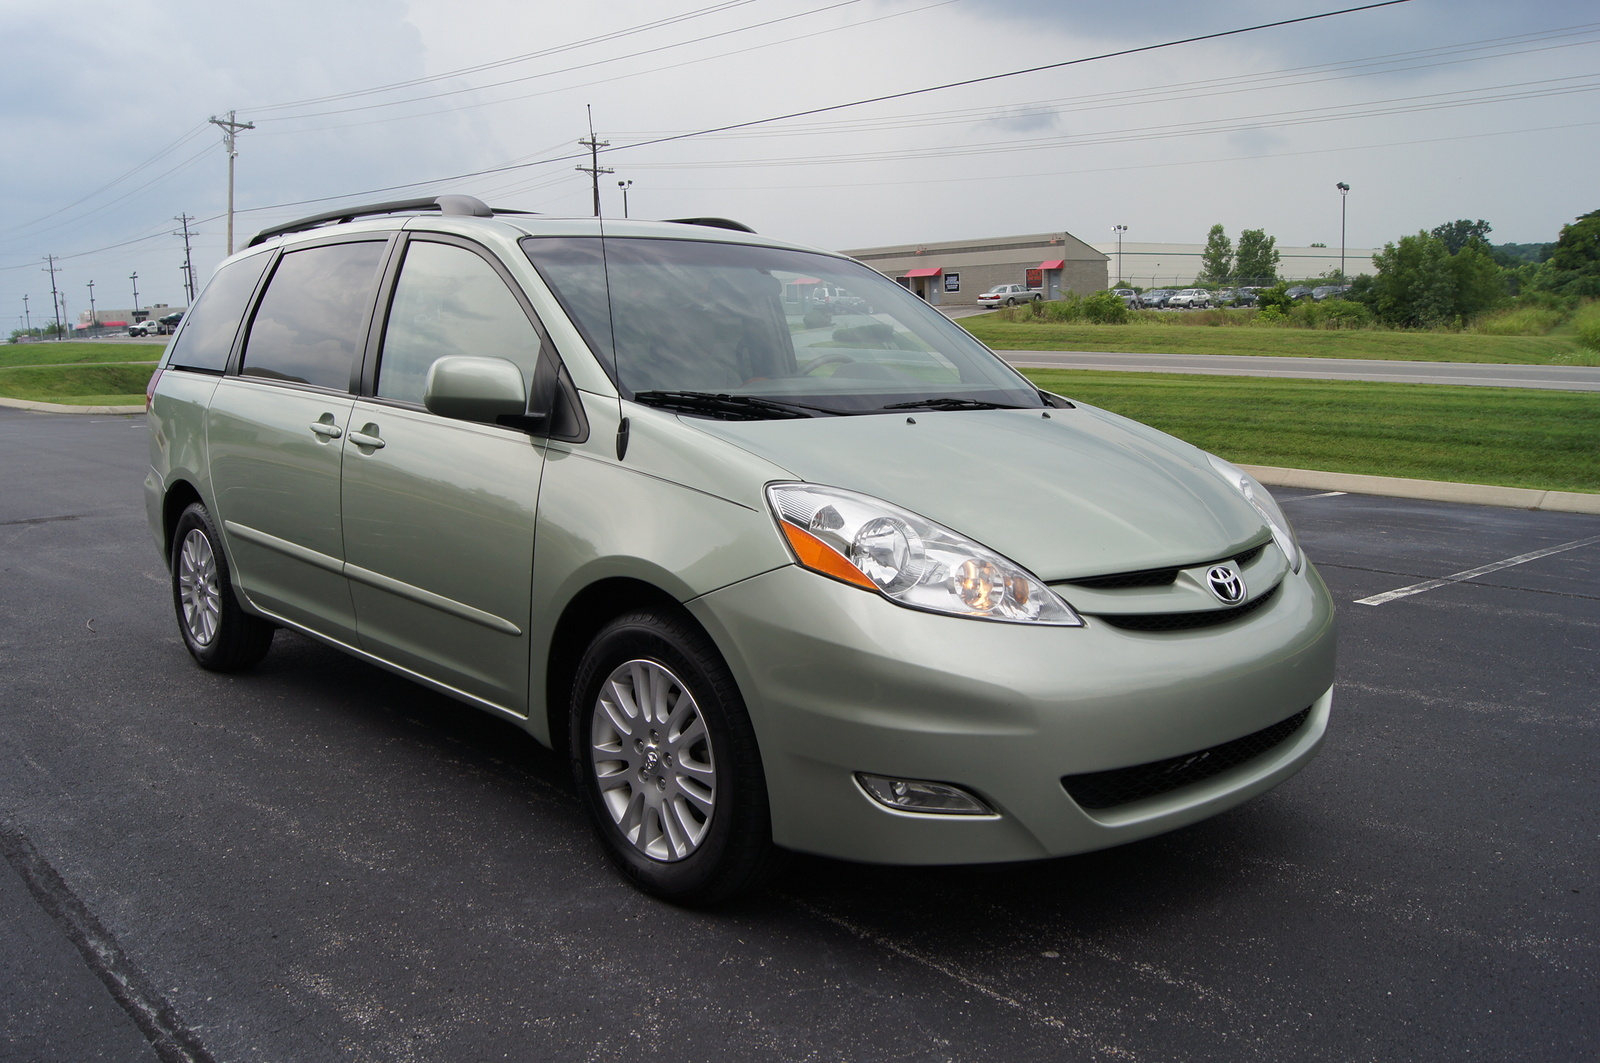 Showthread in addition Schematic Shows Typical Wiring Diagram together with Second Semester Final Project moreover Toyota Jbl Wiring Harness together with 2008 Toyota Sienna. on toyota sienna 2010 radio install kit